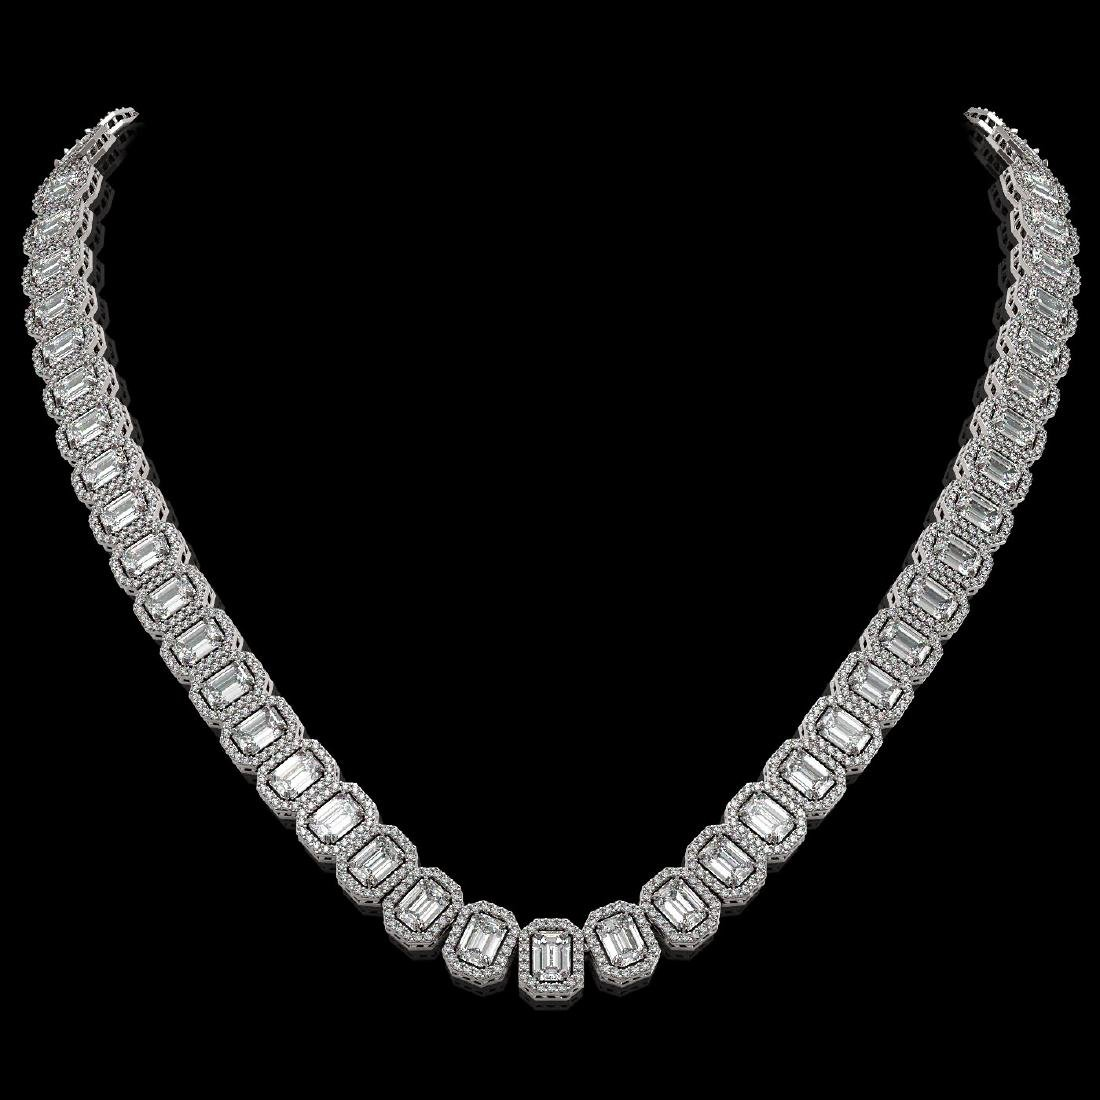 40.3 CTW Emerald Cut Diamond Designer Necklace 18K